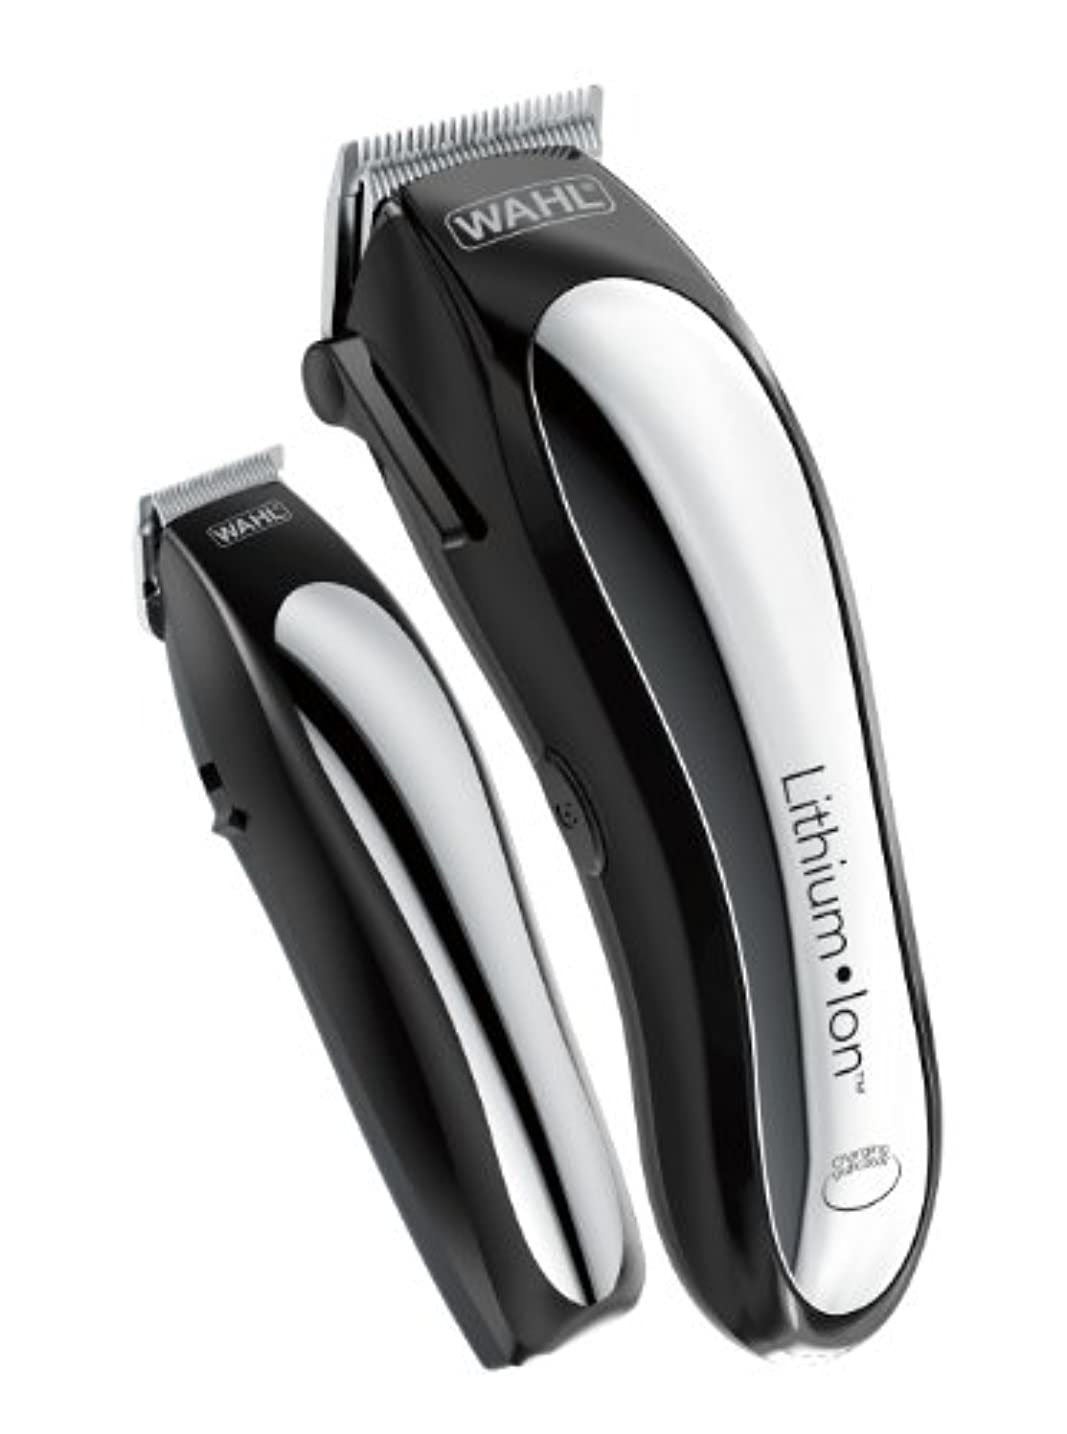 日の出雑草絶対にWahl Clipper Lithium Ion Cordless Rechargeable Hair Clippers and Trimmers for men,Hair Cutting Kit with 10 Guide...